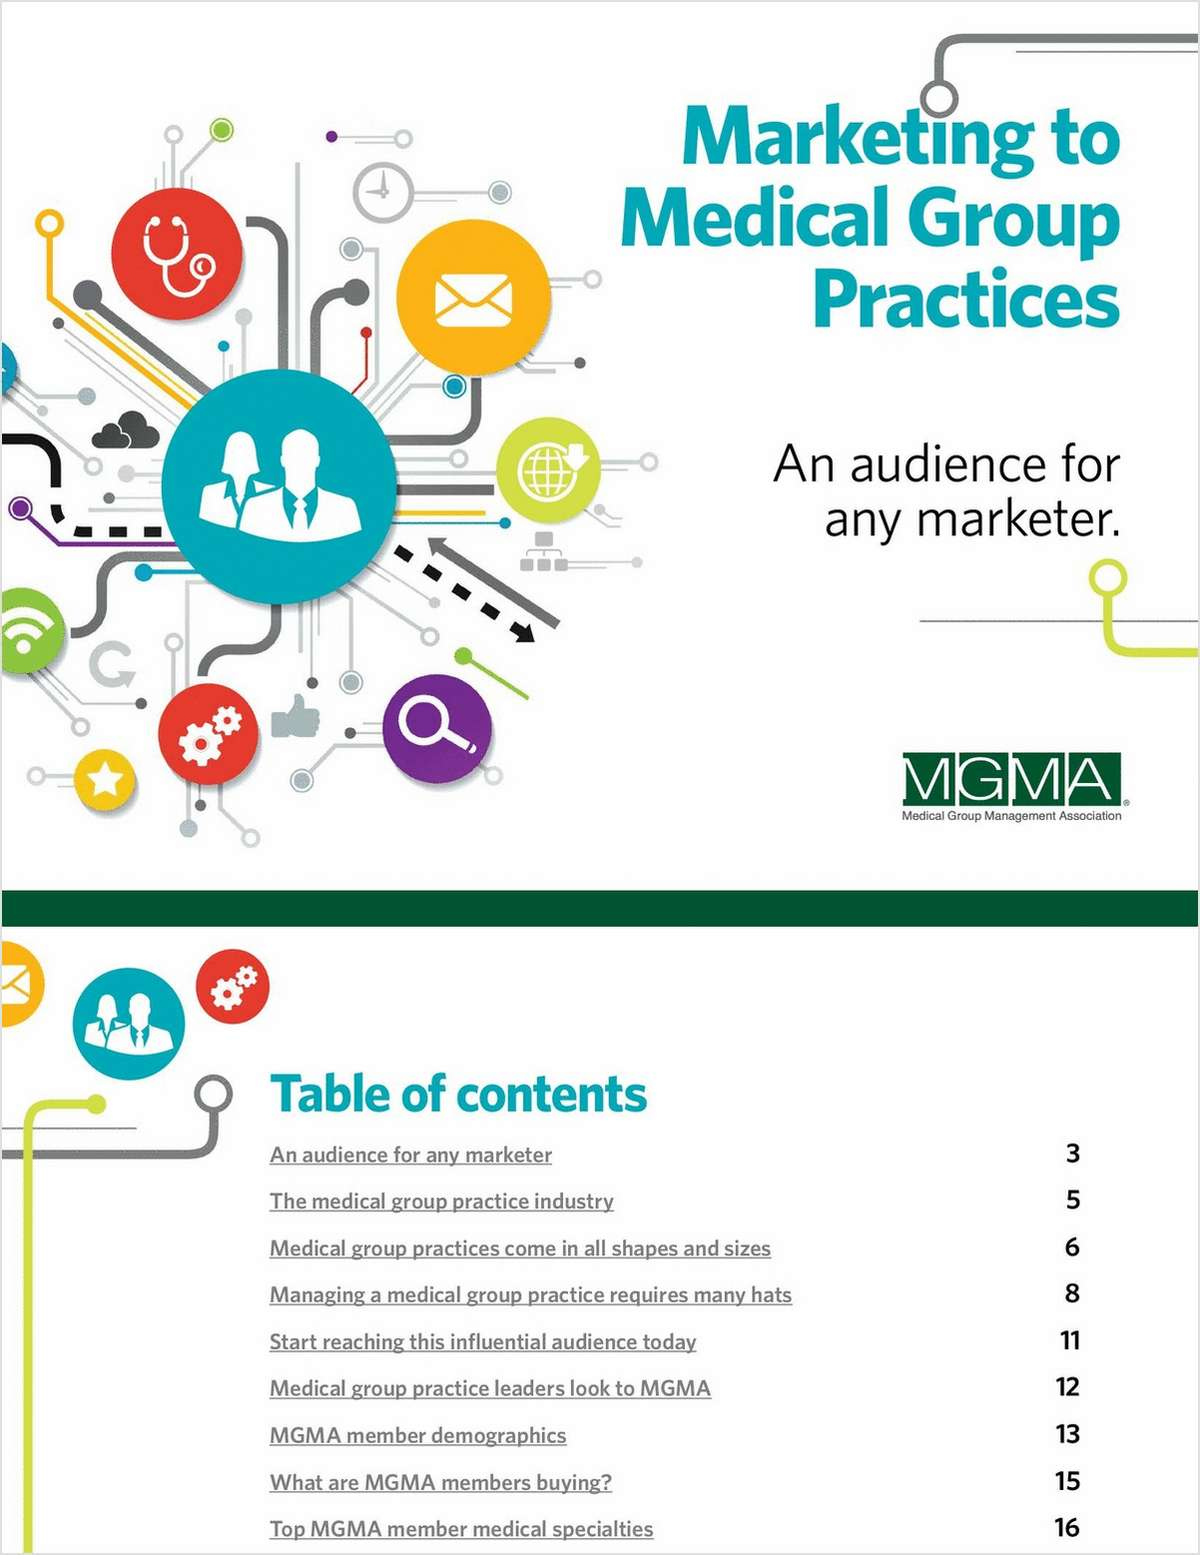 Marketing to Medical Group Practices -- An Audience for Any Marketer